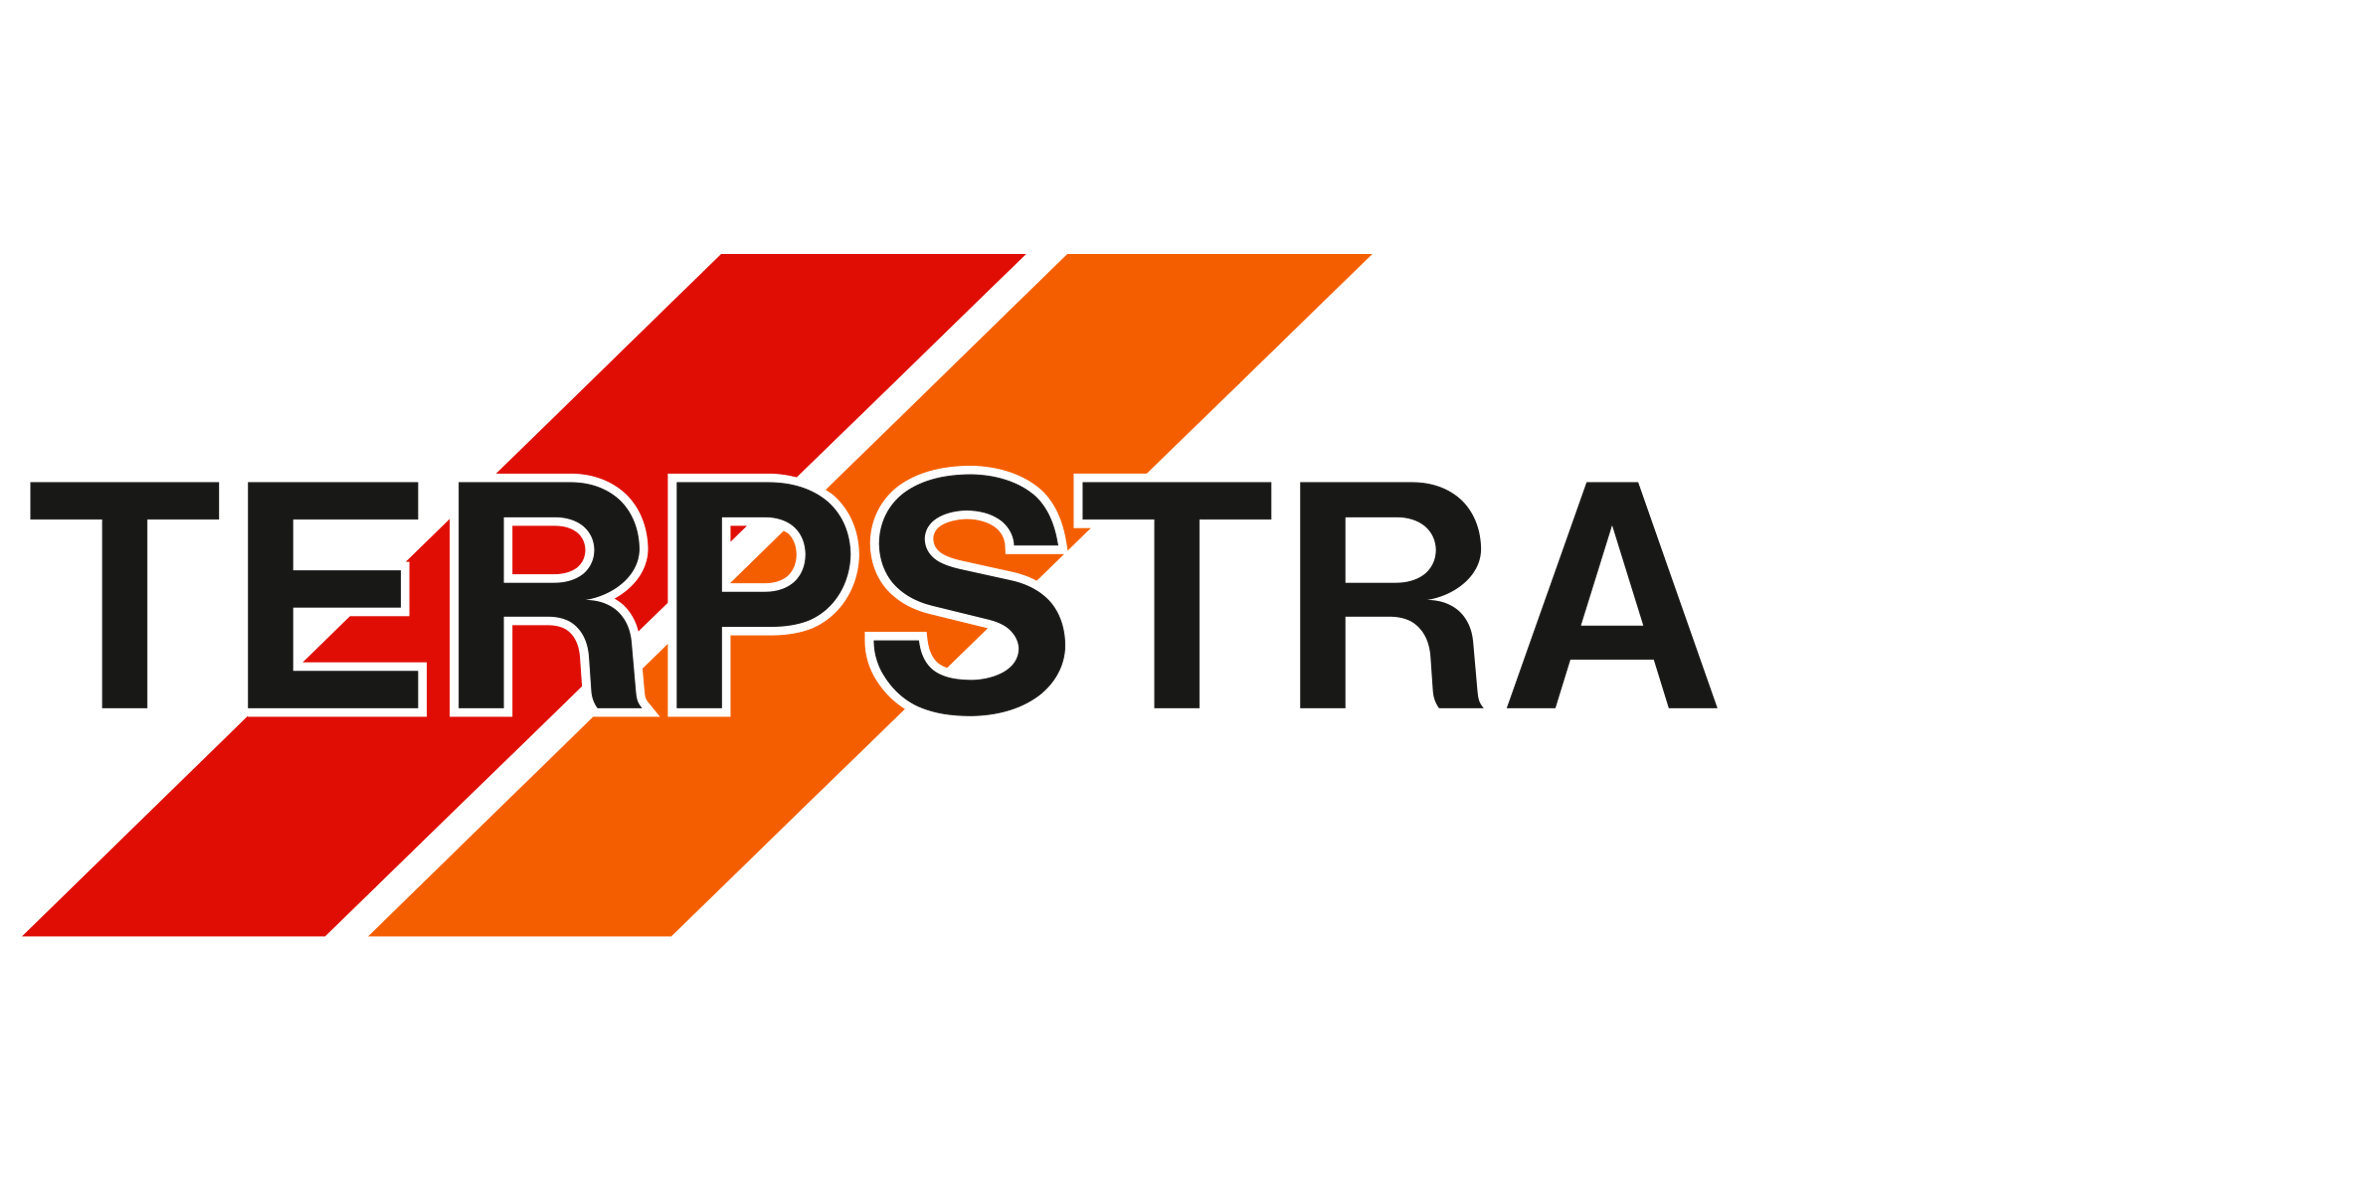 Terpstra